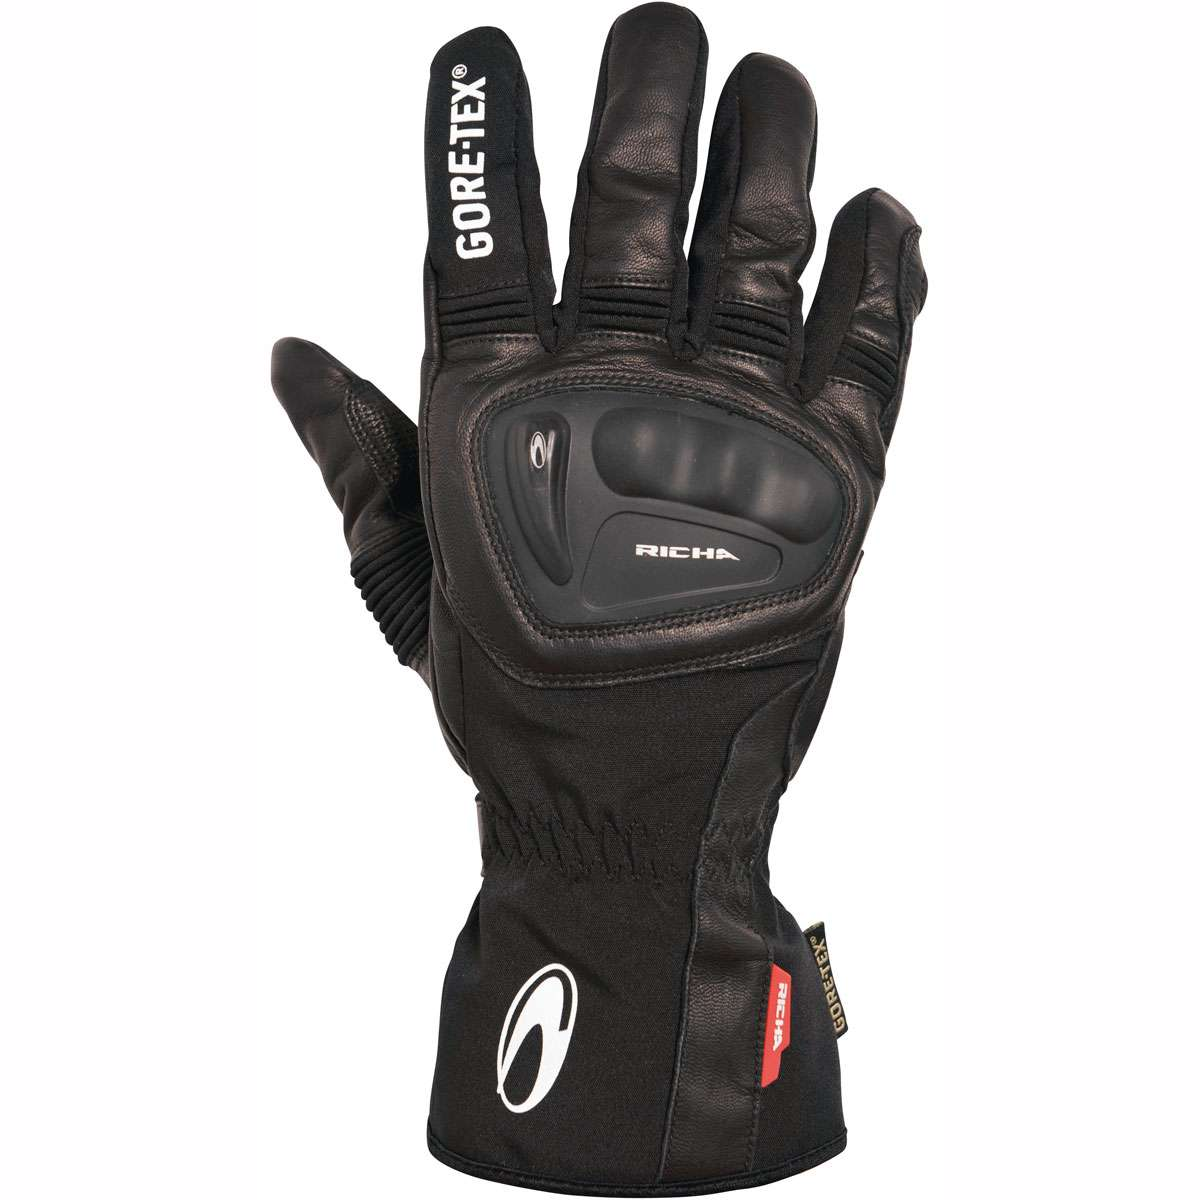 Richa Hurricane Winter Motorcycle Gloves